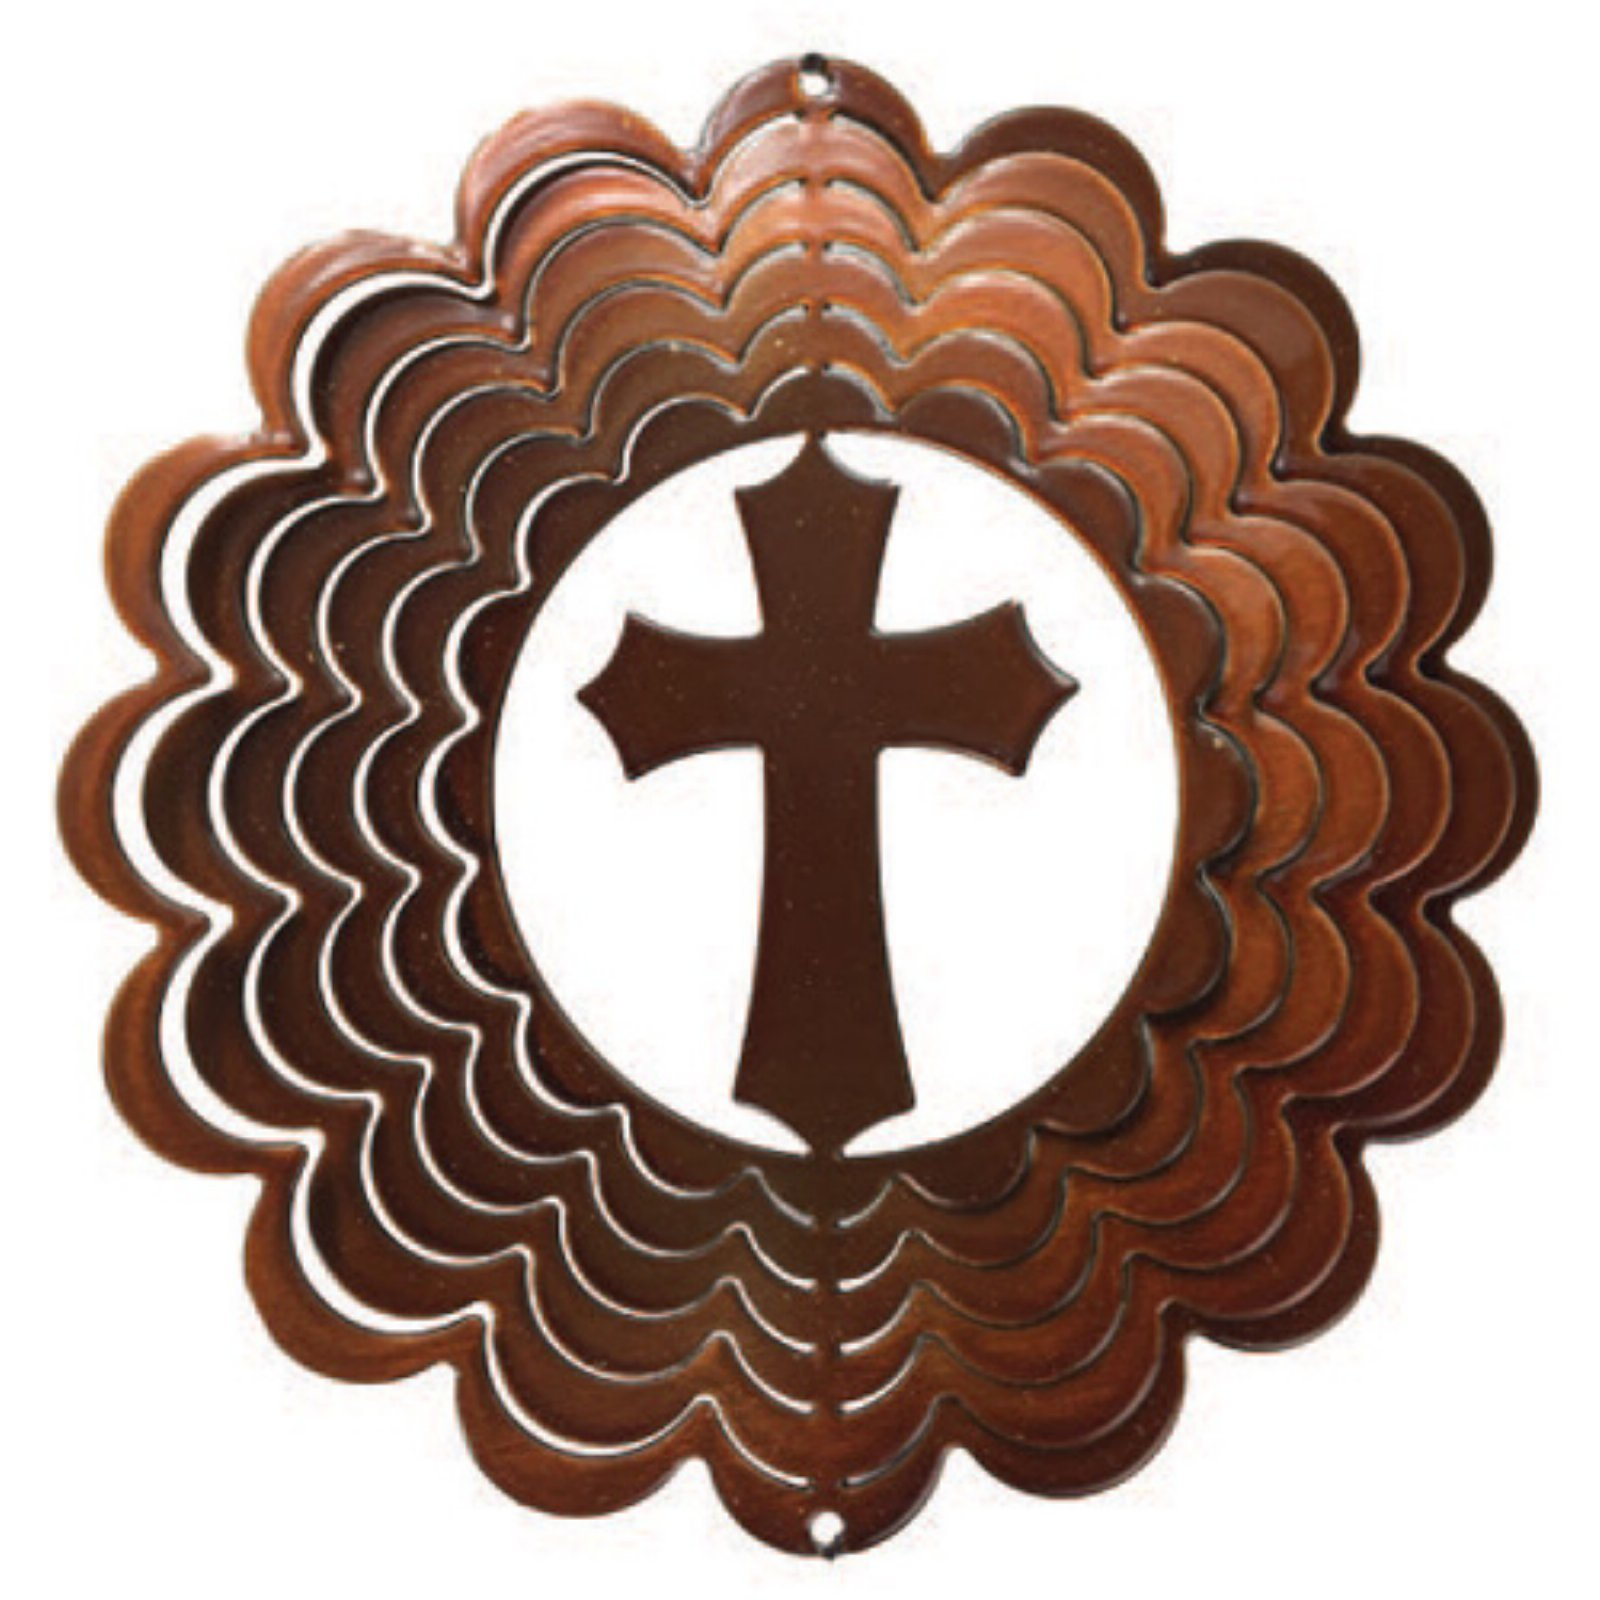 Next Innovations 6 in. Copper Cross Wind Spinner by Next Innovations